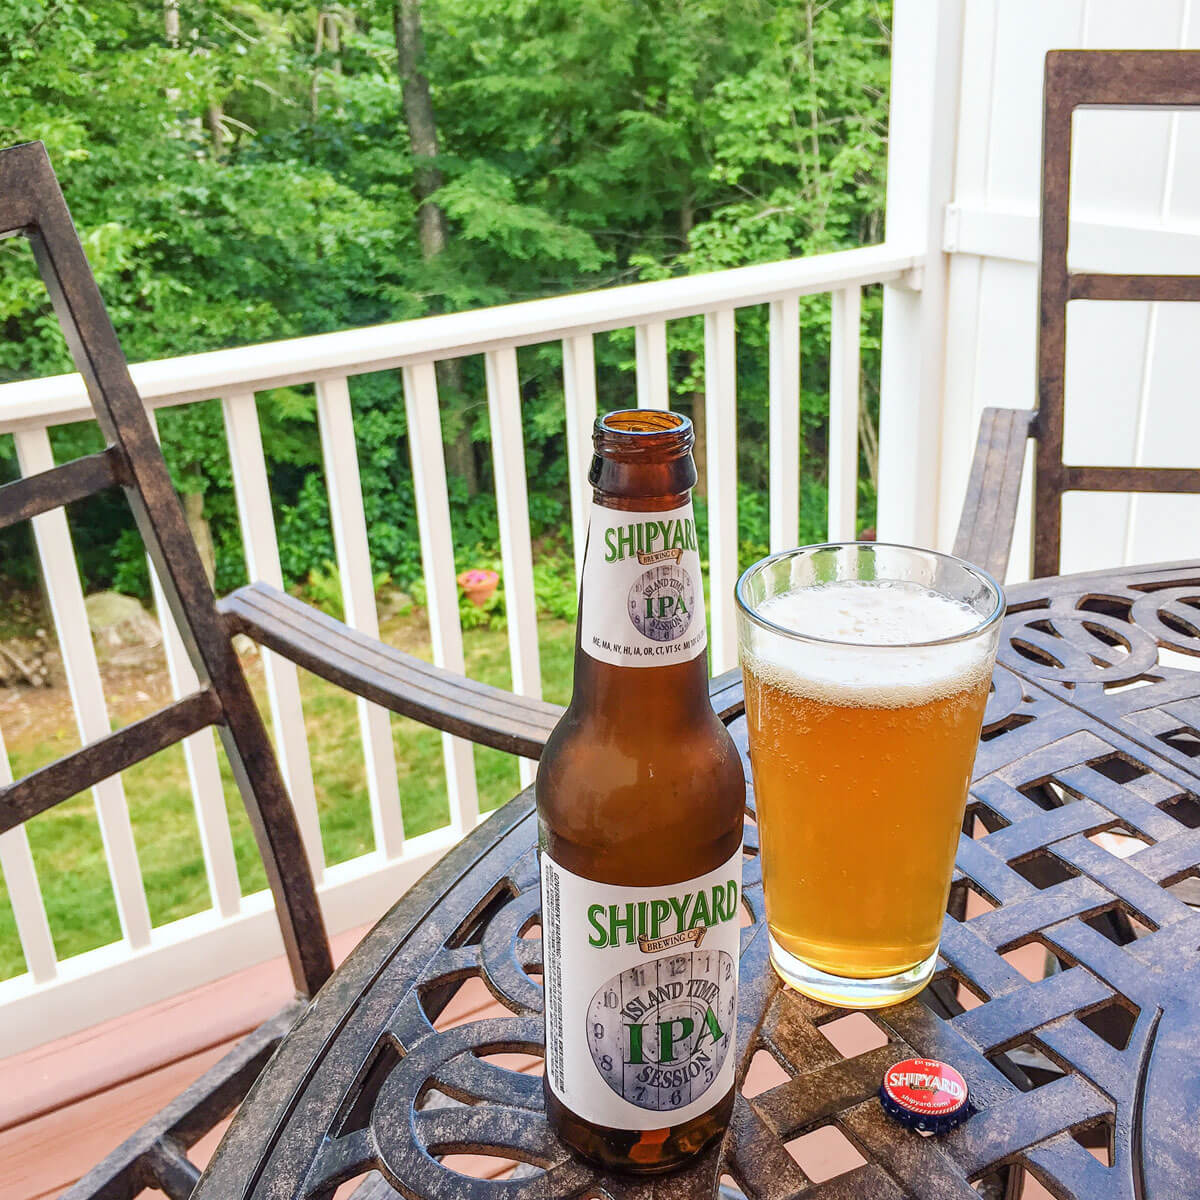 Island Time Session IPA by Shipyard Brewing Co.